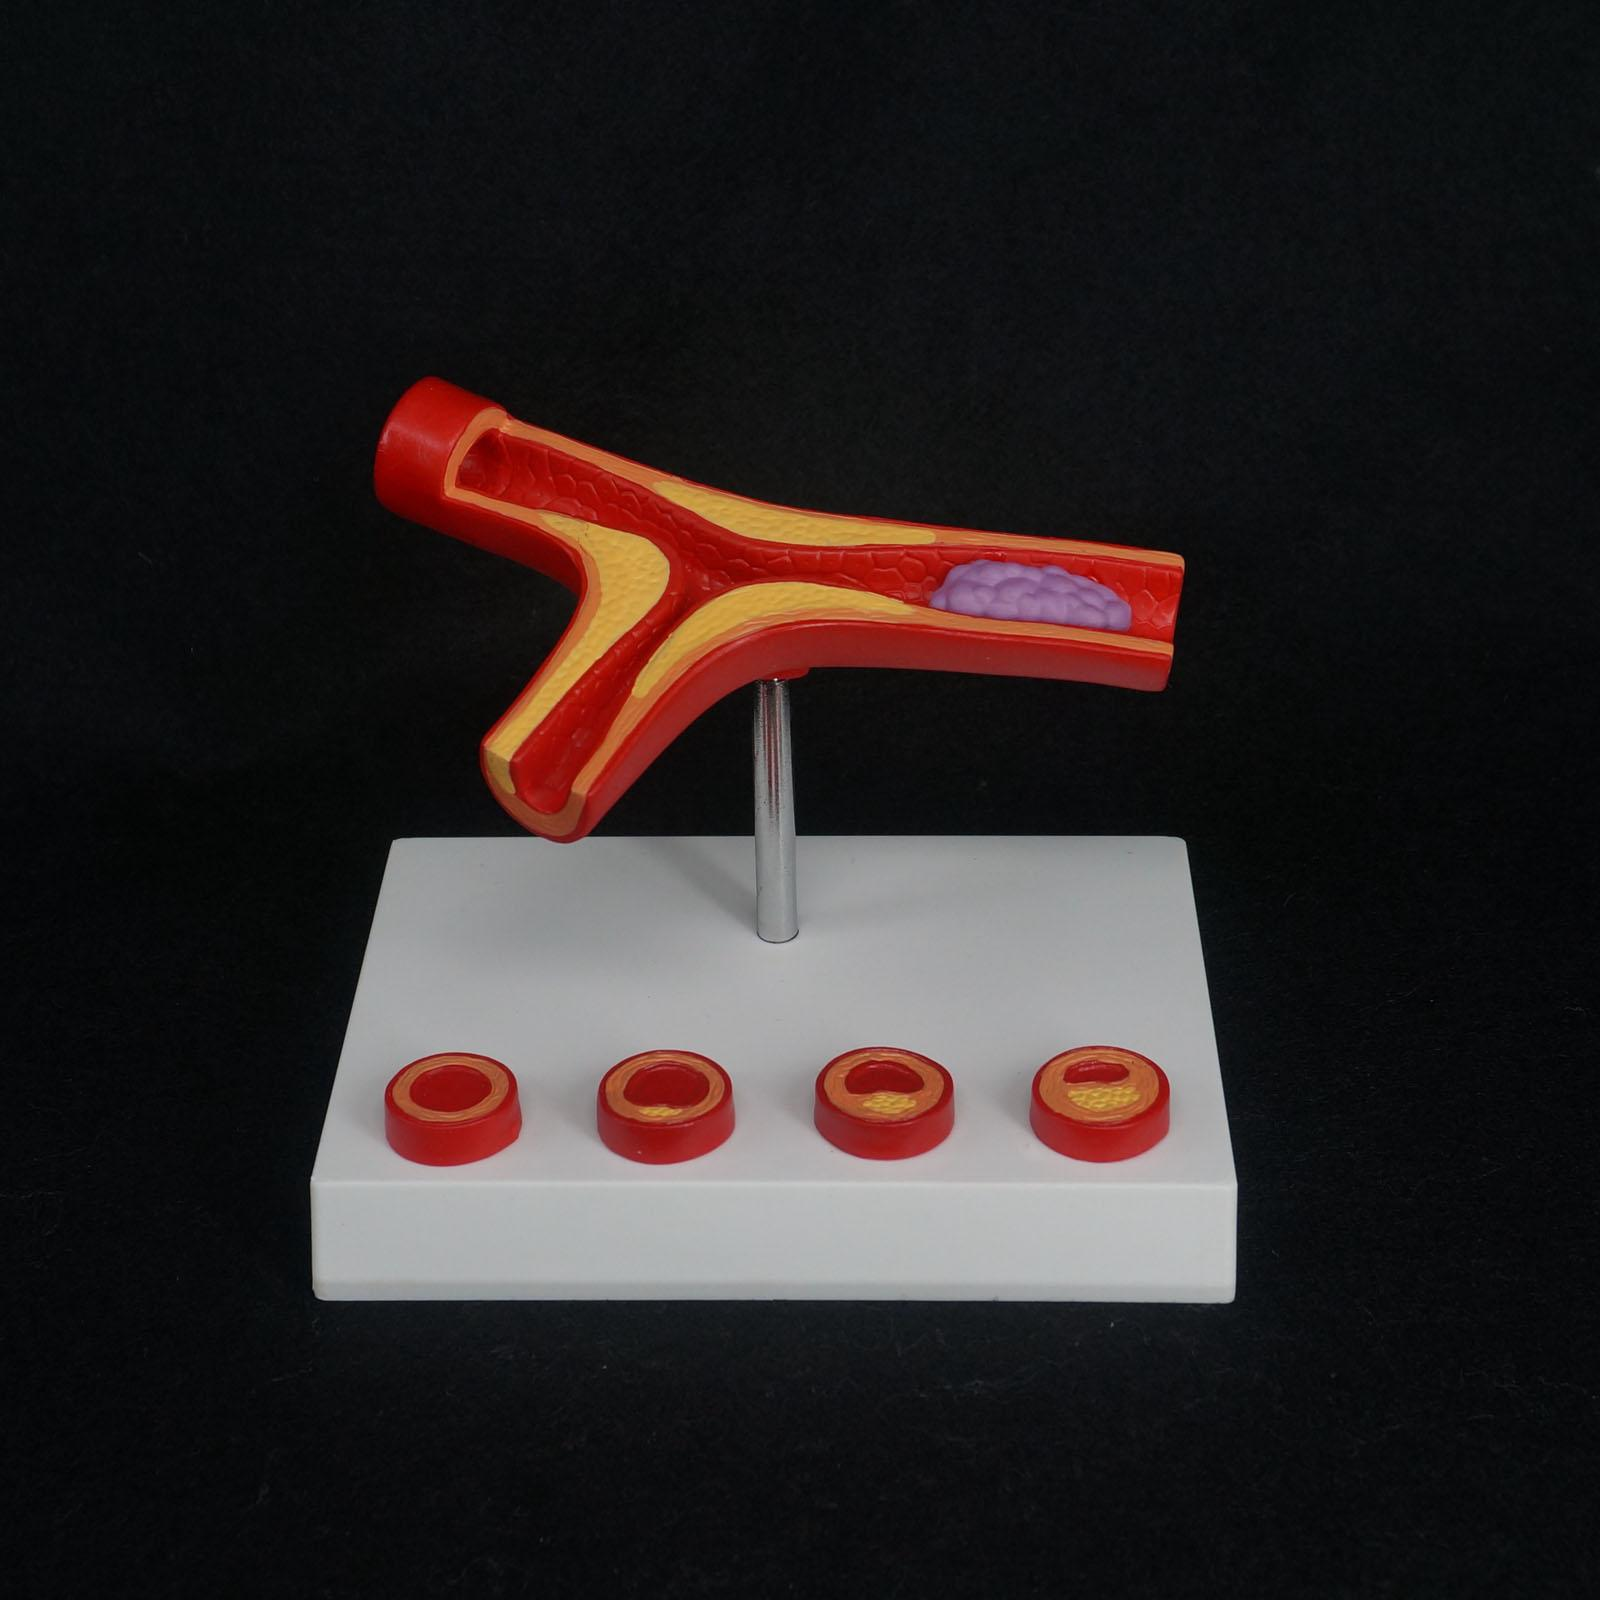 Human Arterial Atherosclerosis Arteriosclerosis Model Thrombus Vascular Medical Model iso advanced infant arterial puncture arm model arterial puncture training simulator